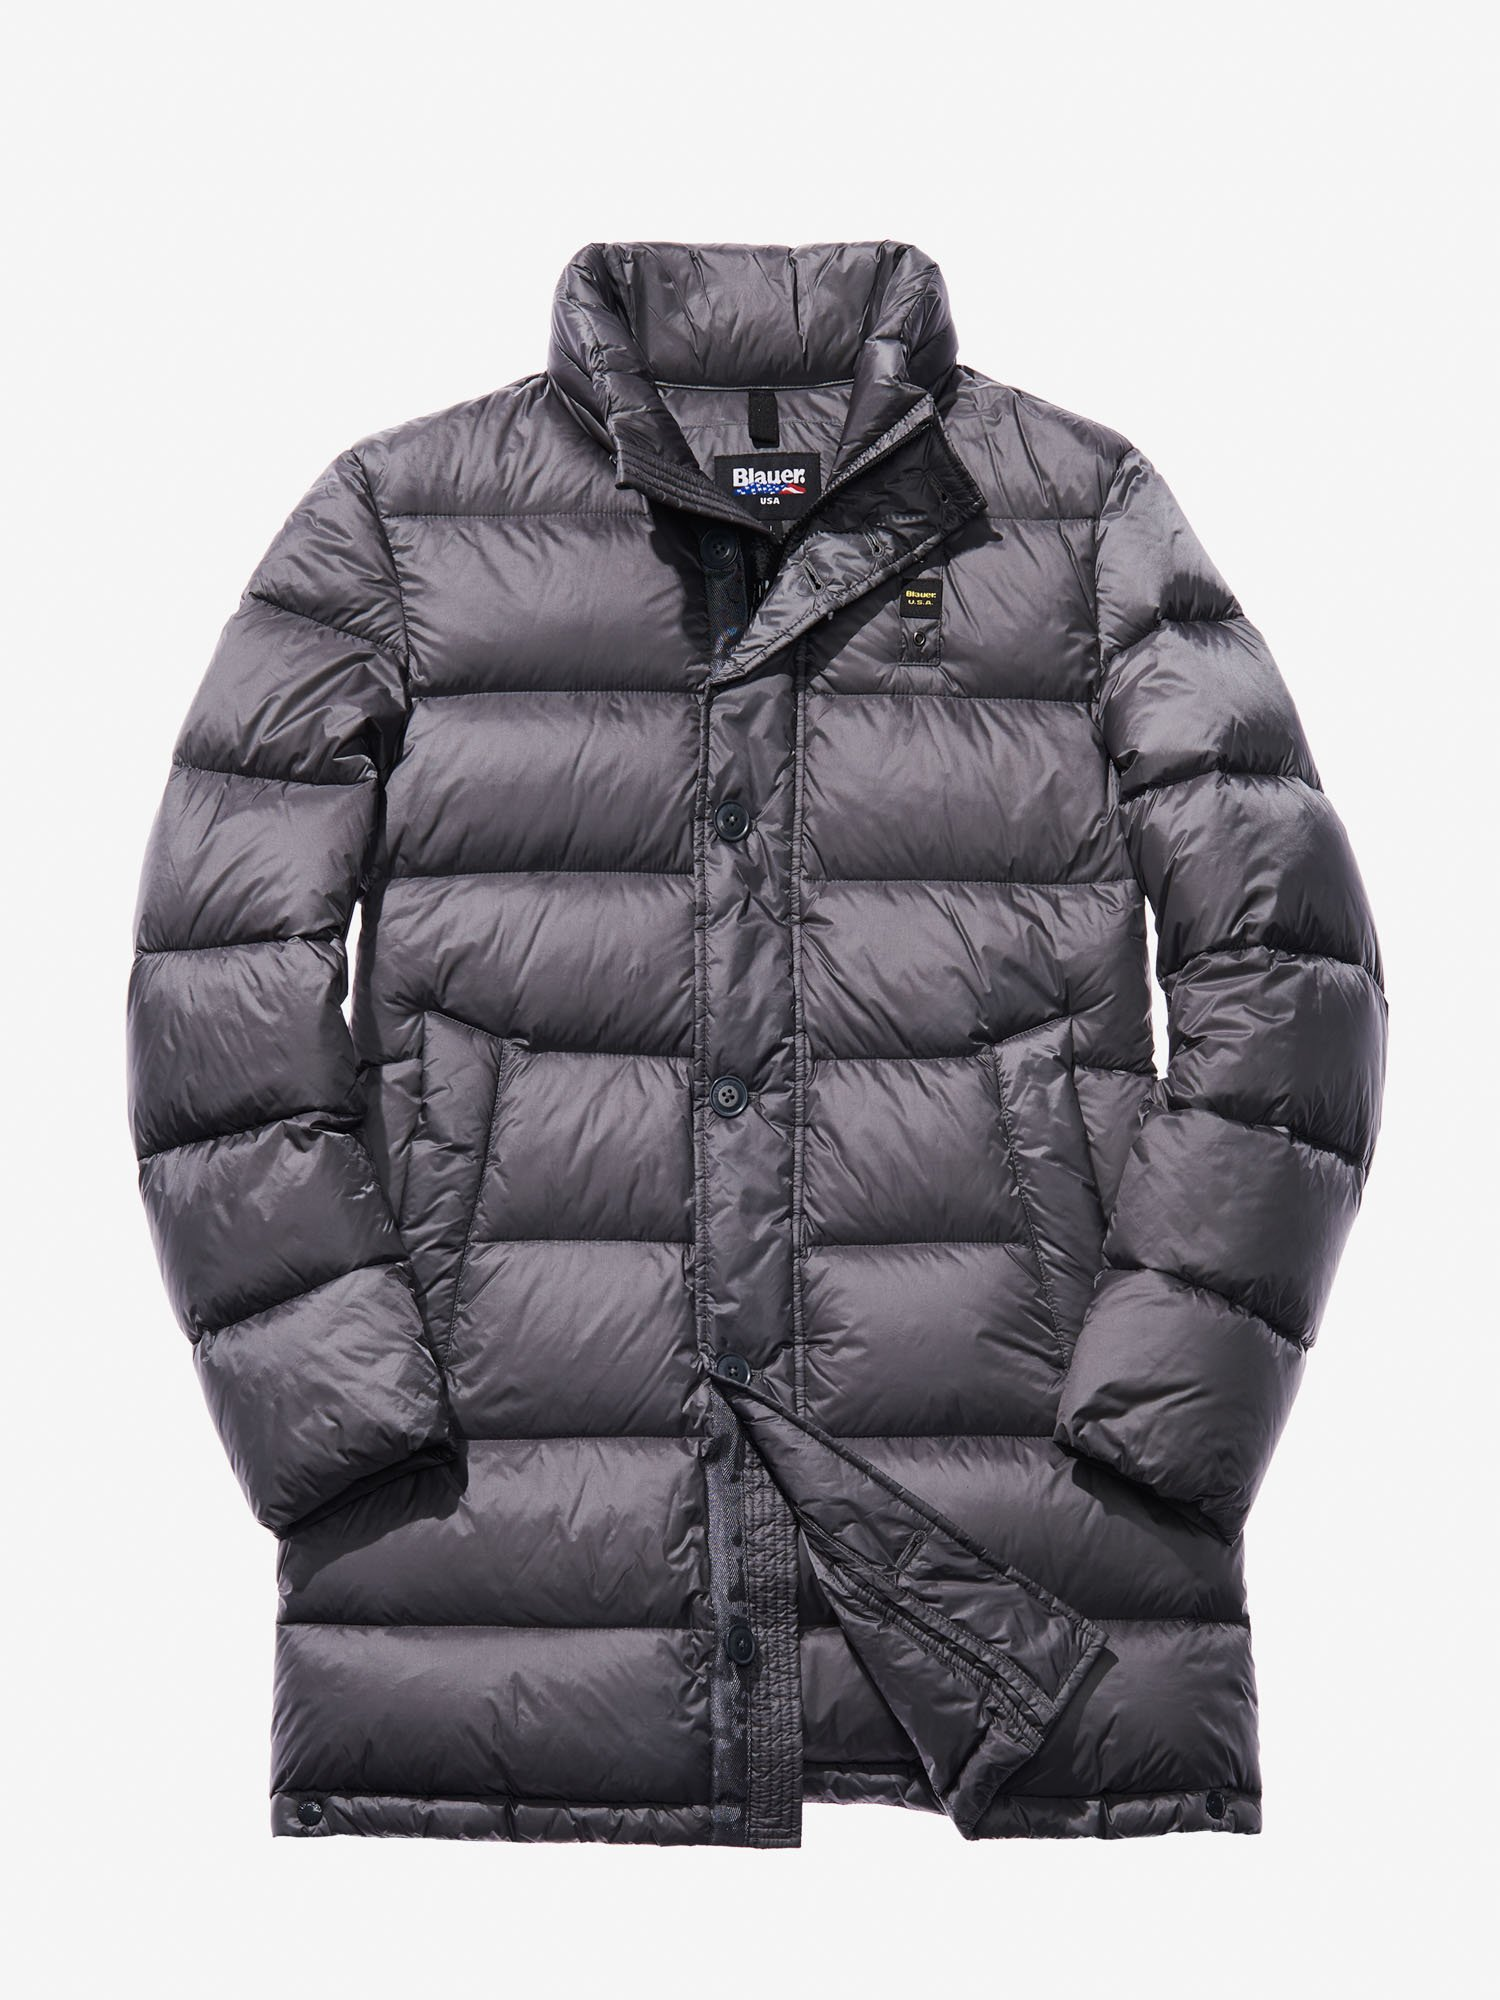 DANIELE DOWN COAT - Blauer